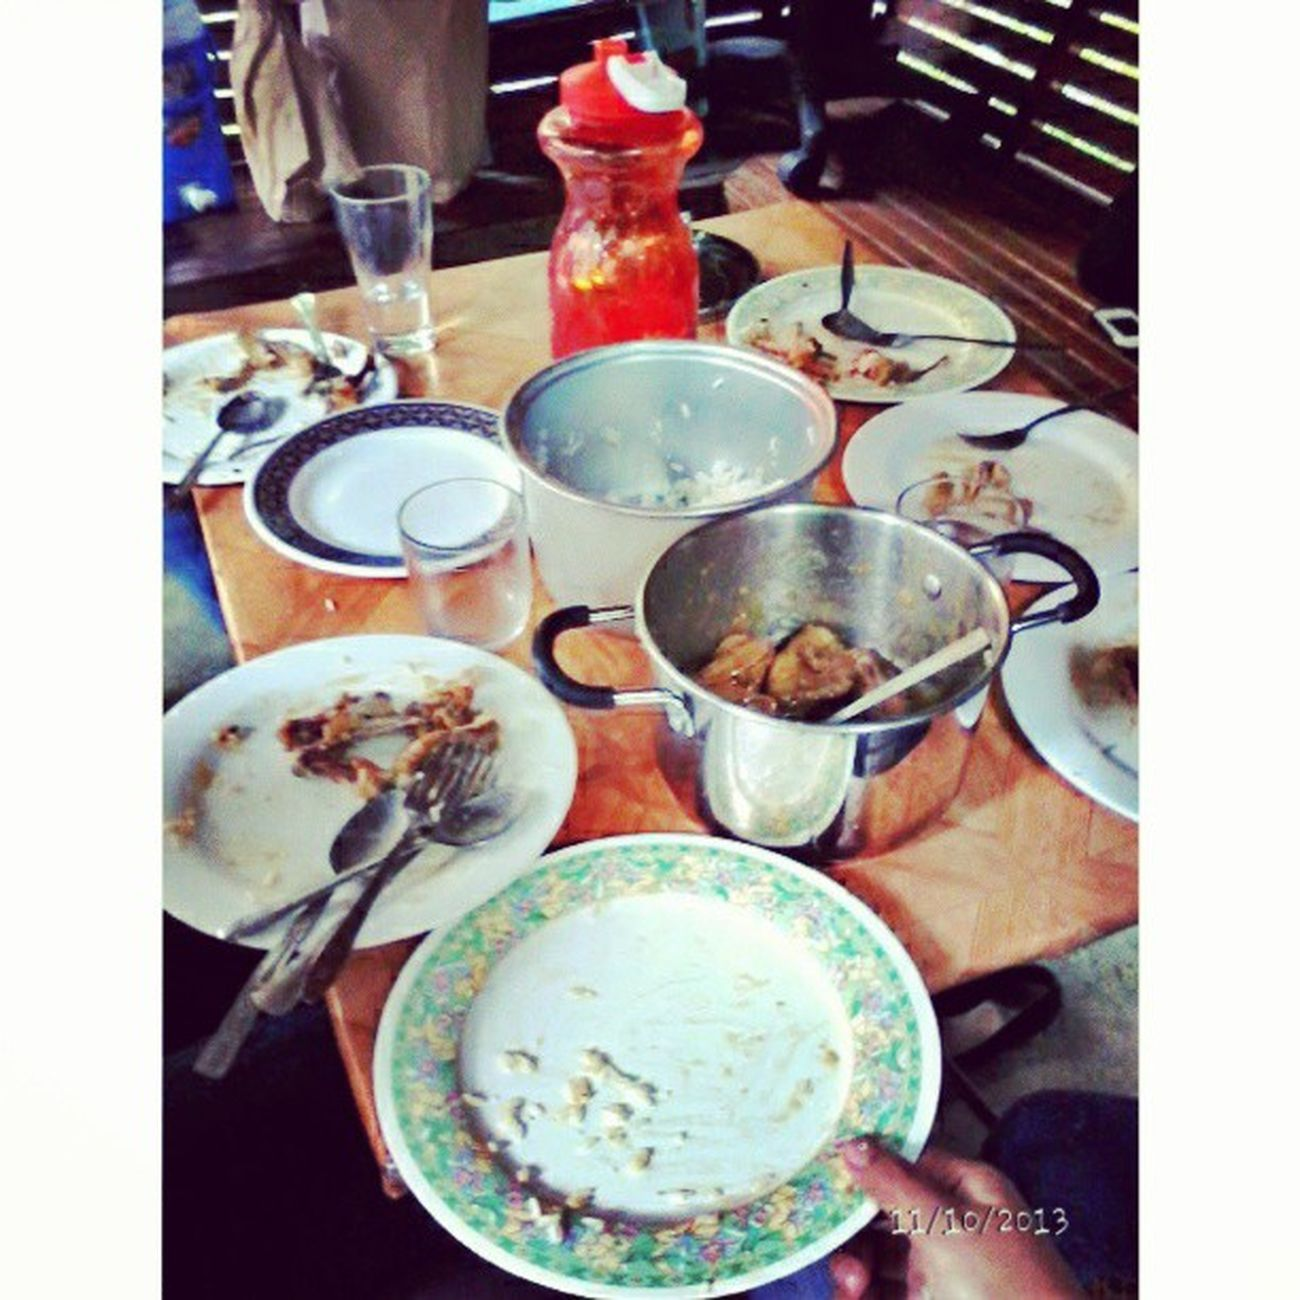 Ubos! Haha sarap ng kain ng tropa. Gang mamaya pa to kain kain kain bonding! :) Happy WithGirlfriends